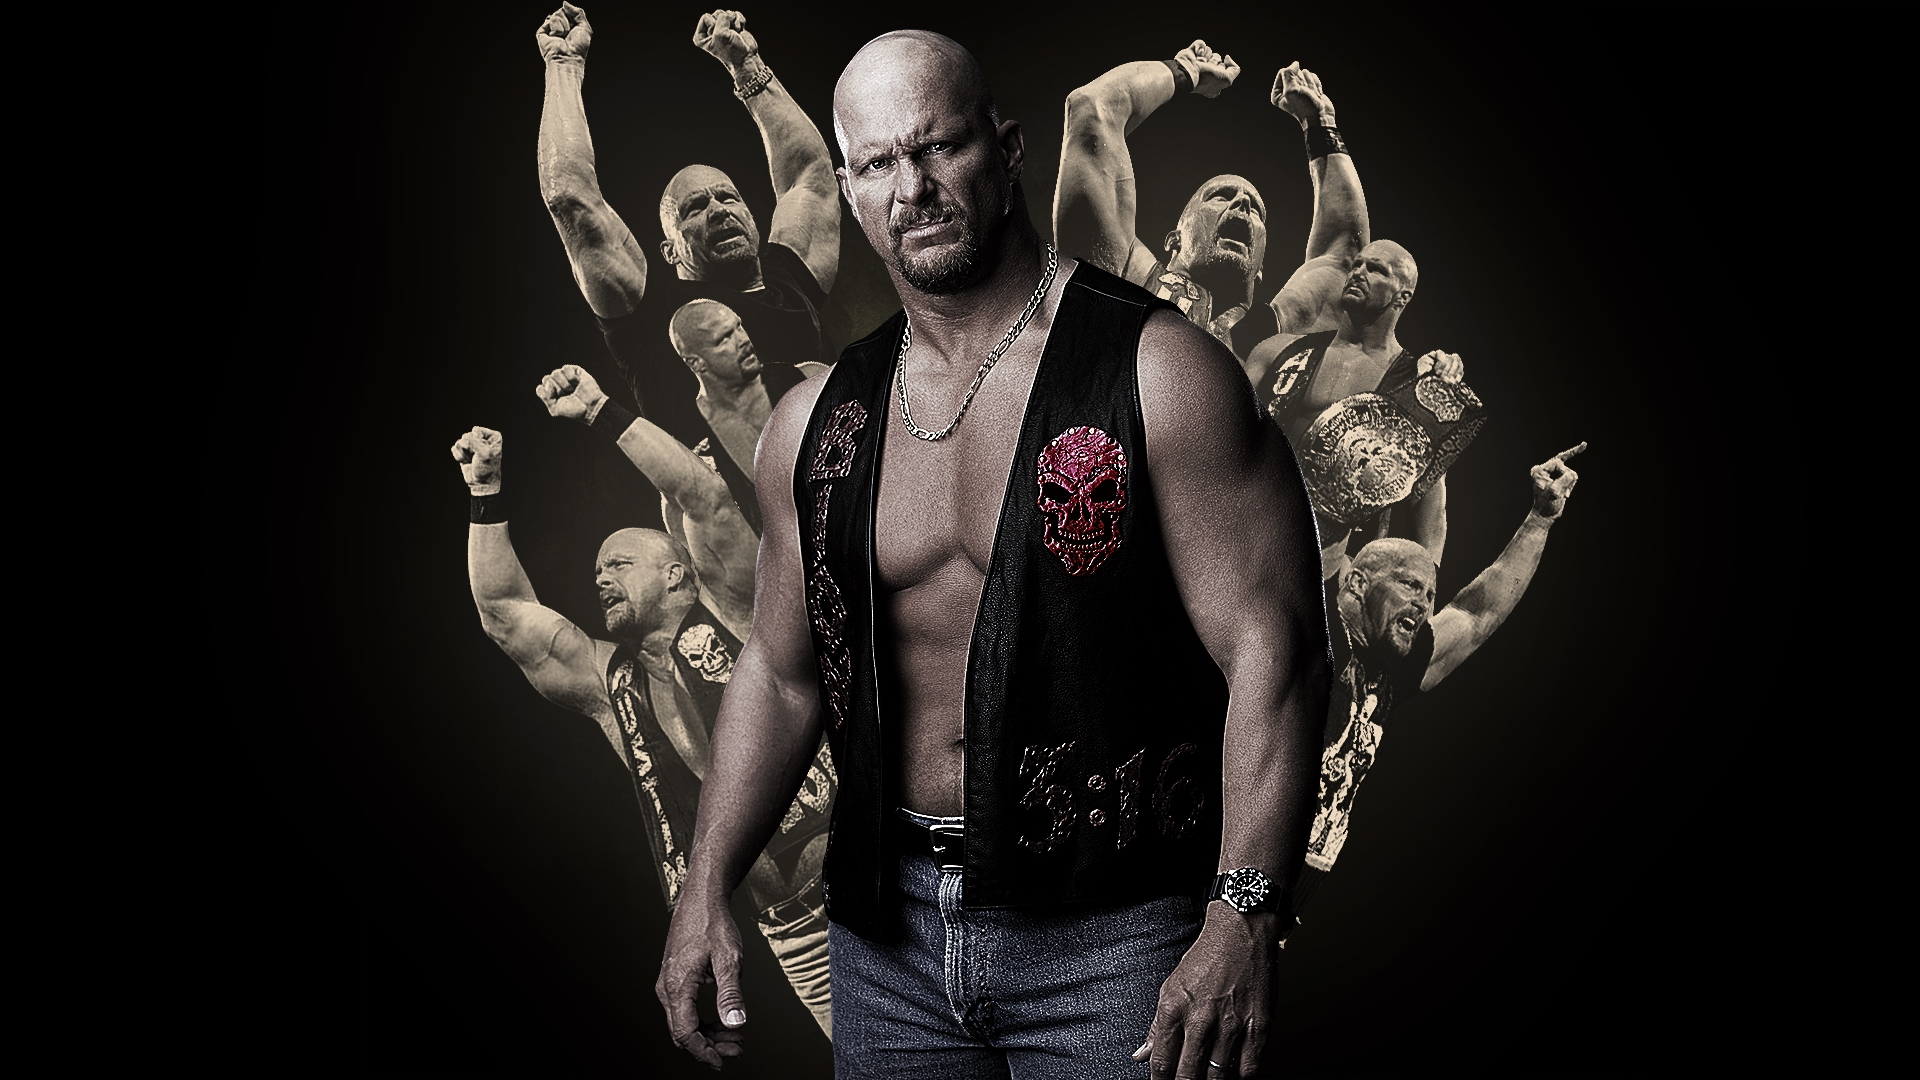 stone cold steve austin wallpaper wwe